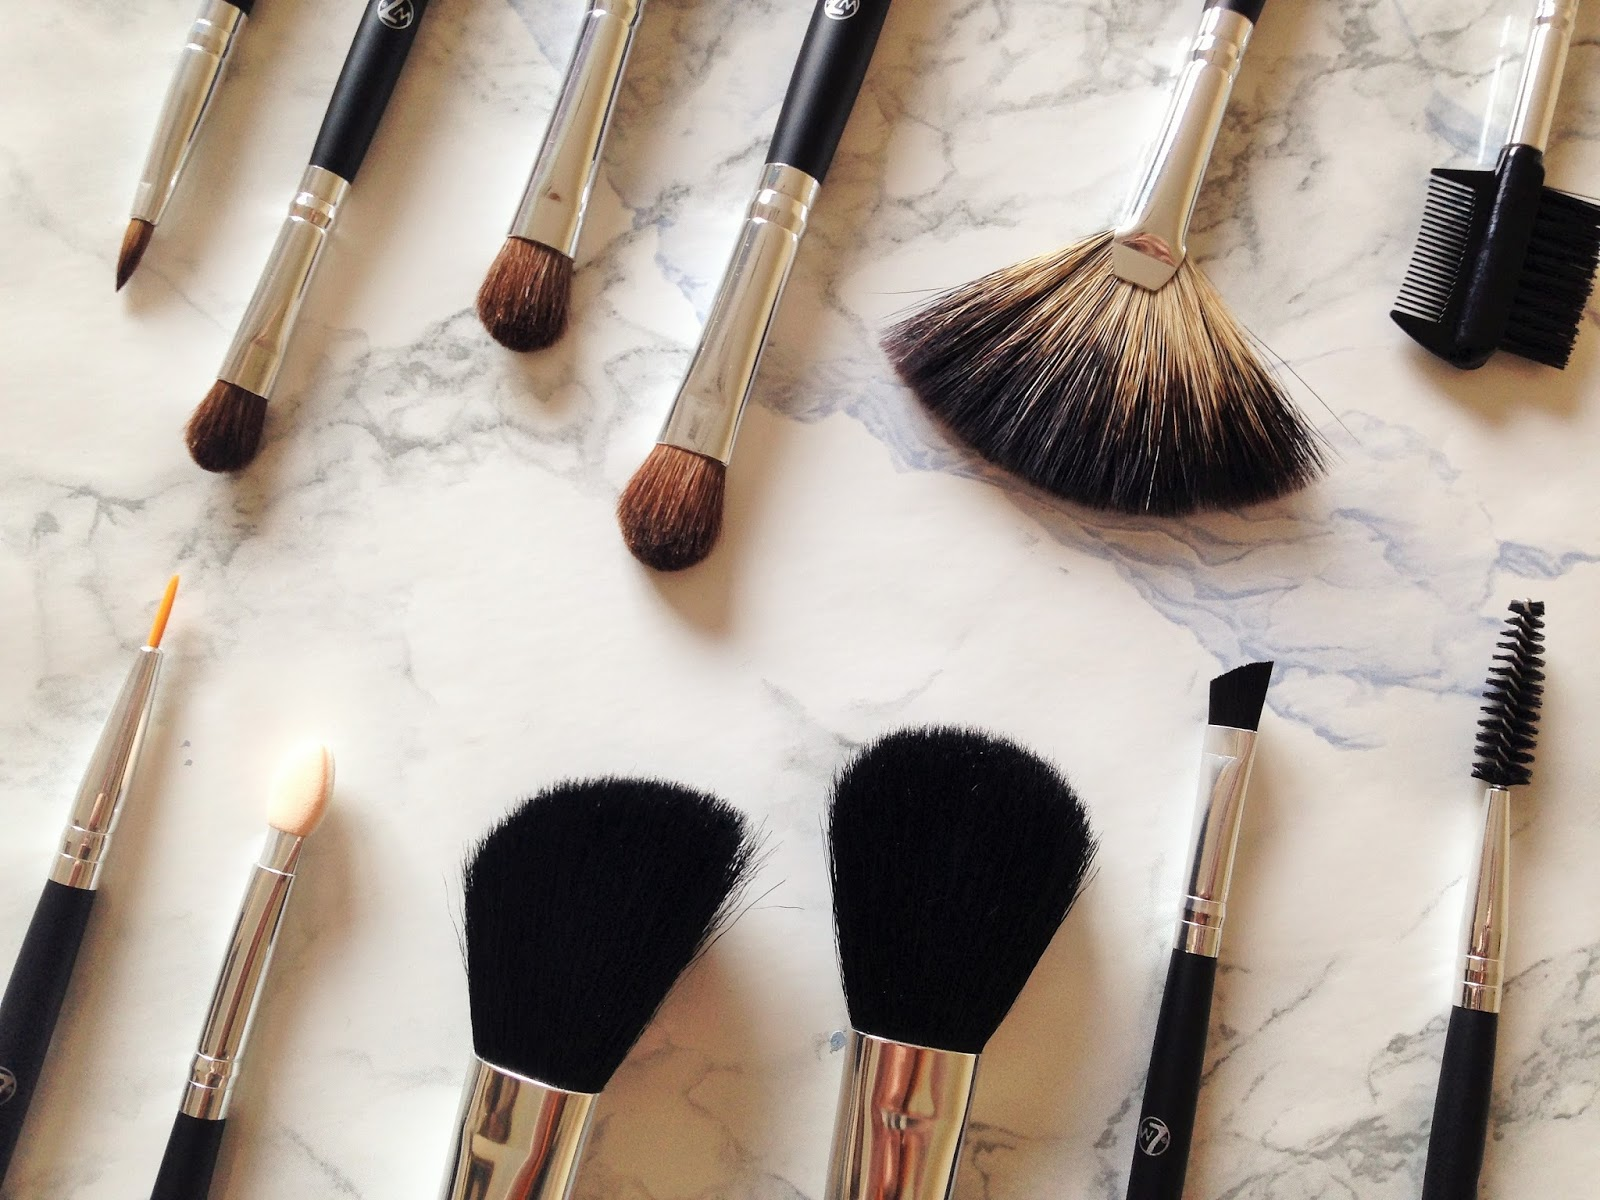 W7 Brush Kit Review